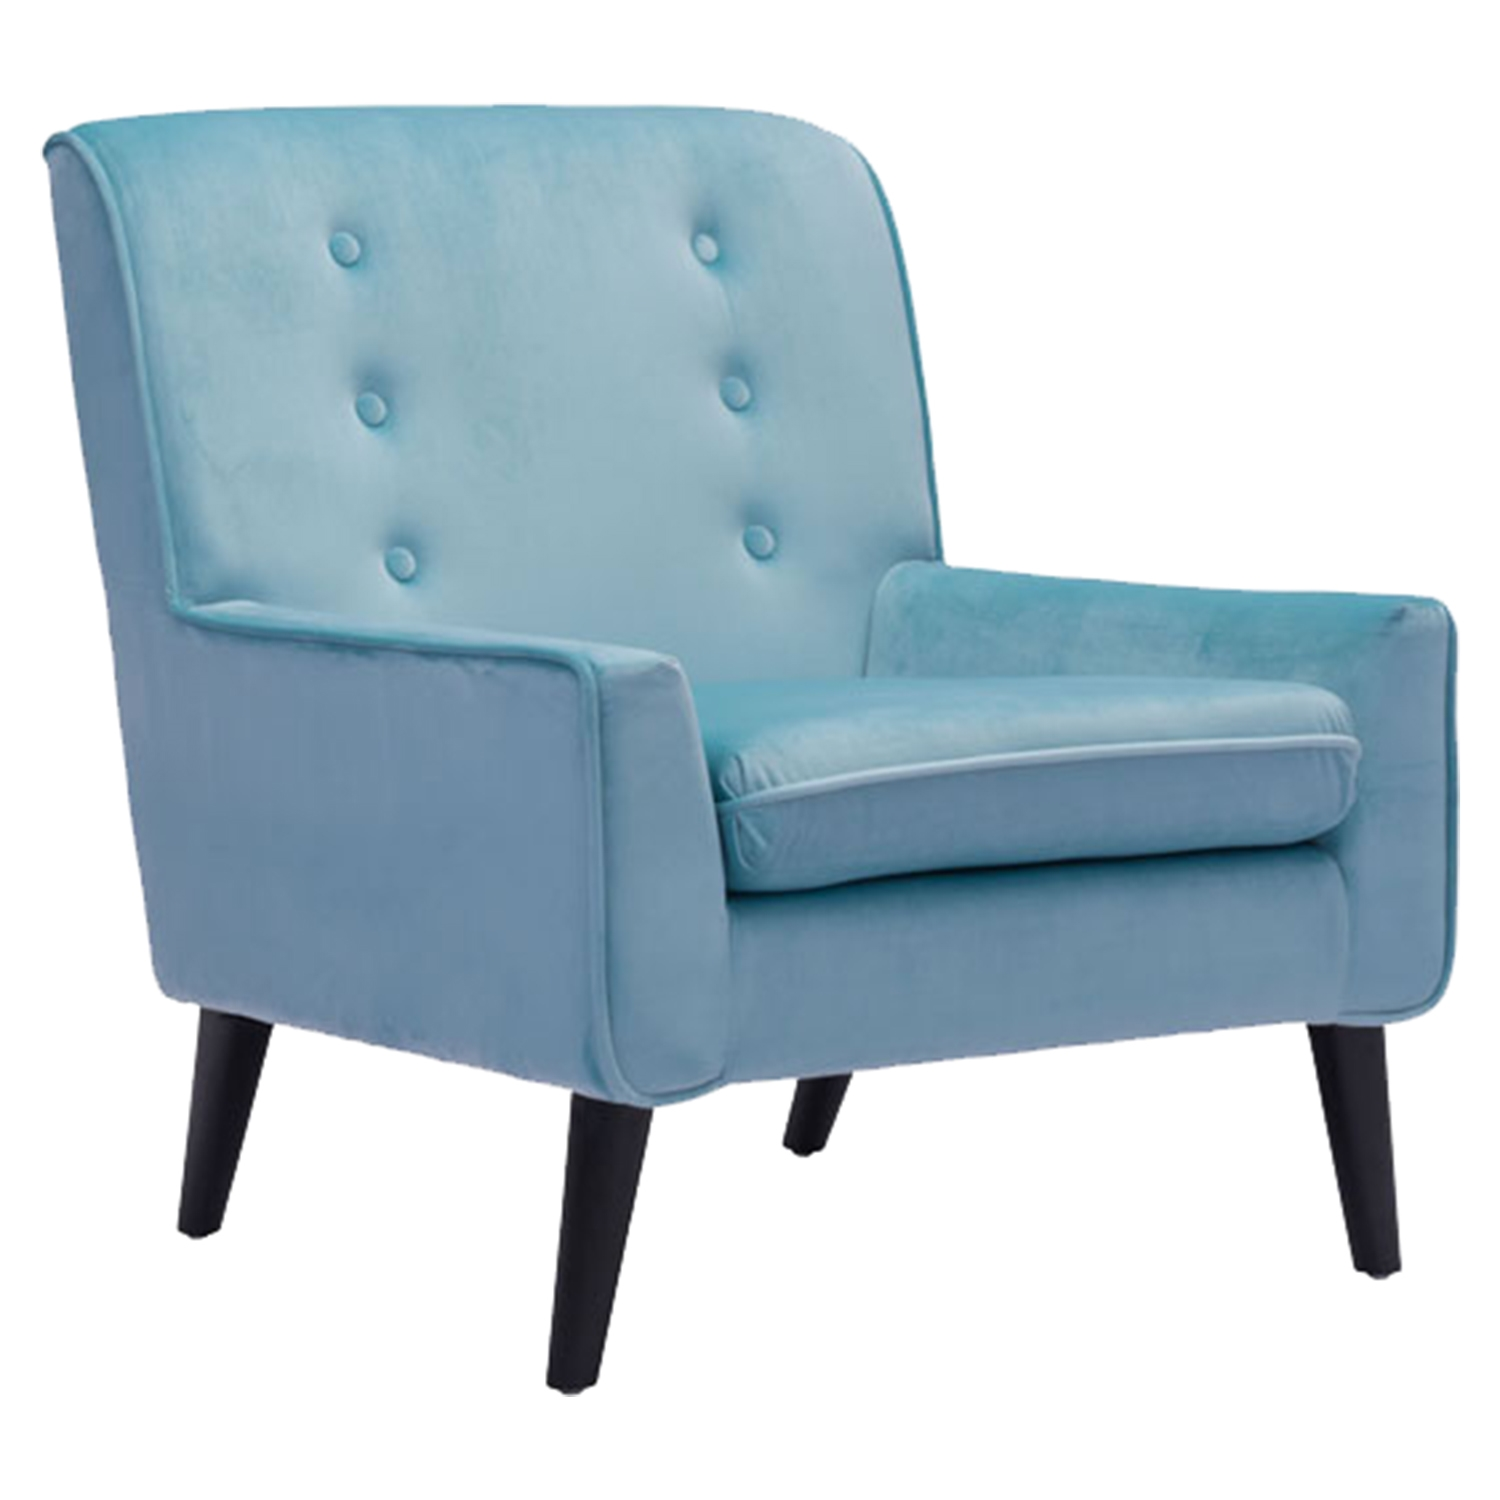 Coney Tufted Arm Chair - Aqua Velvet